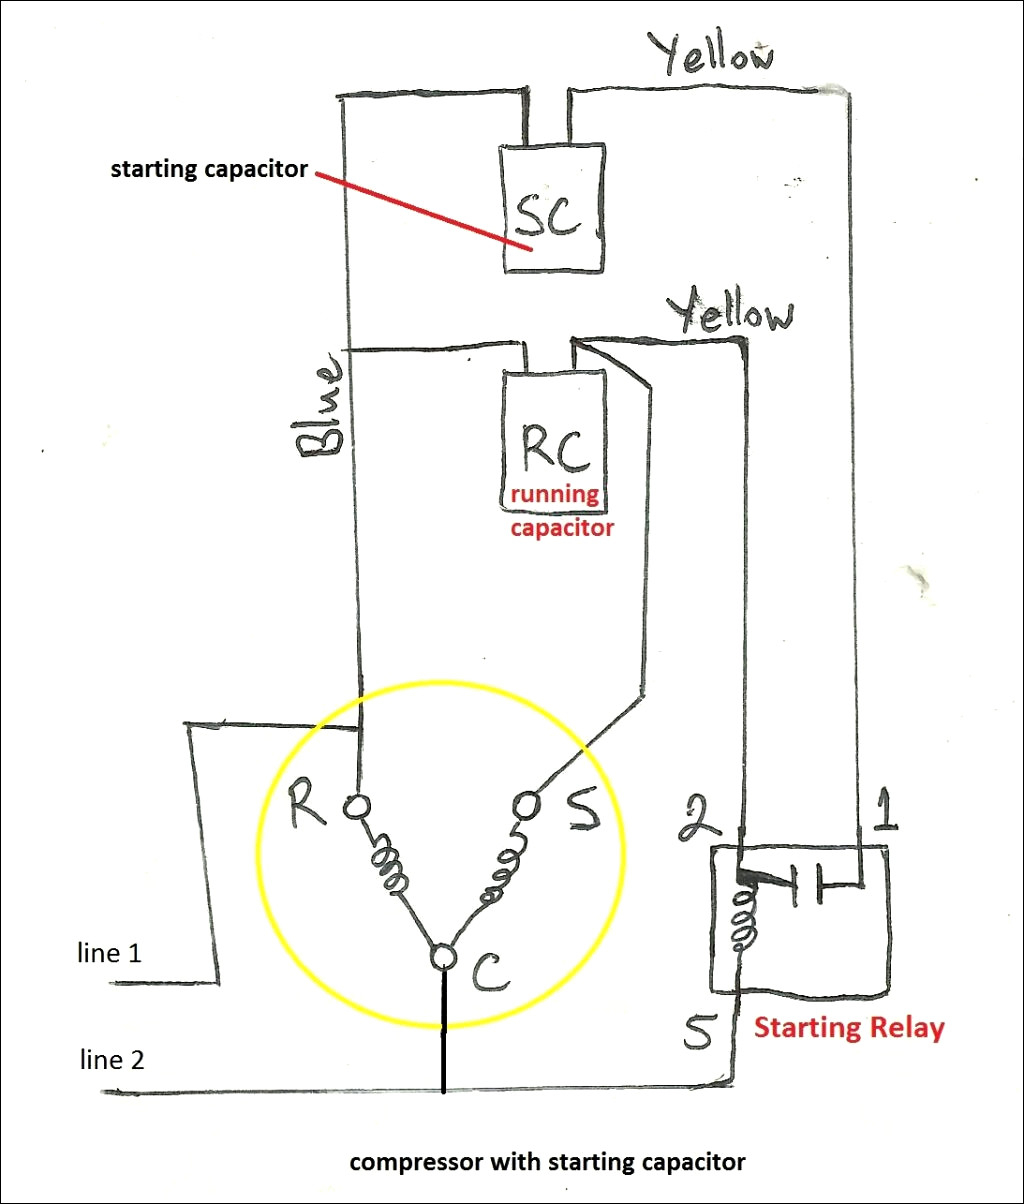 baldor 5hp motor wiring diagram Collection-baldor motors wiring diagram run capacitor wiring diagram inspirational baldor grinder wiringgram of baldor motors wiring diagram 2-l